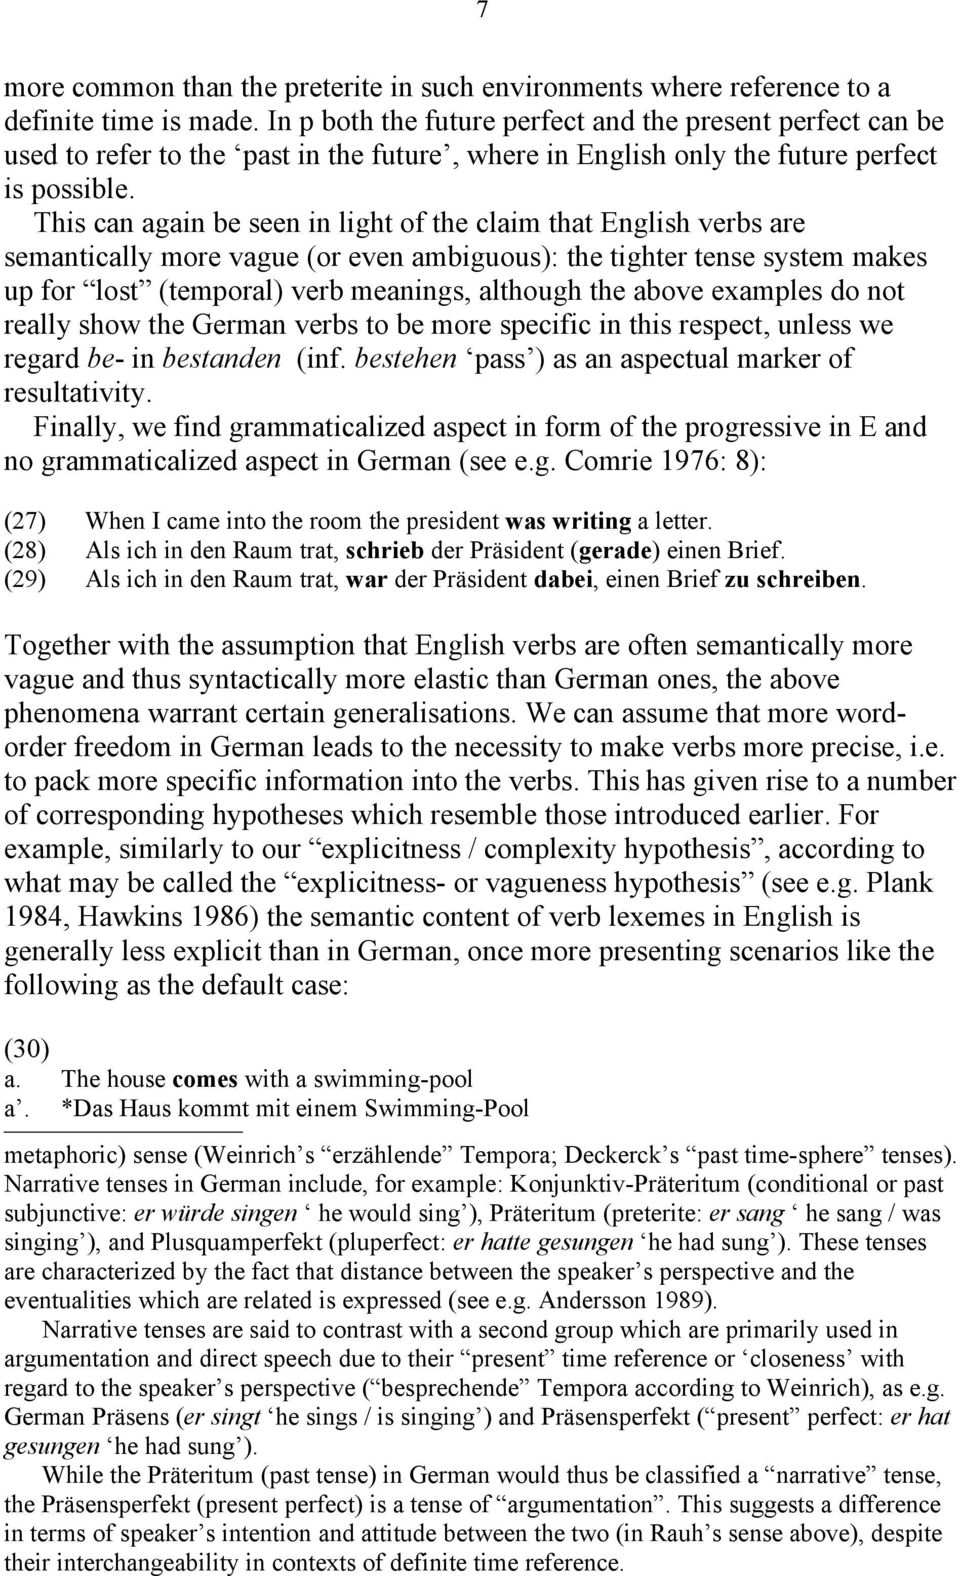 This can again be seen in light of the claim that English verbs are semantically more vague (or even ambiguous): the tighter tense system makes up for lost (temporal) verb meanings, although the